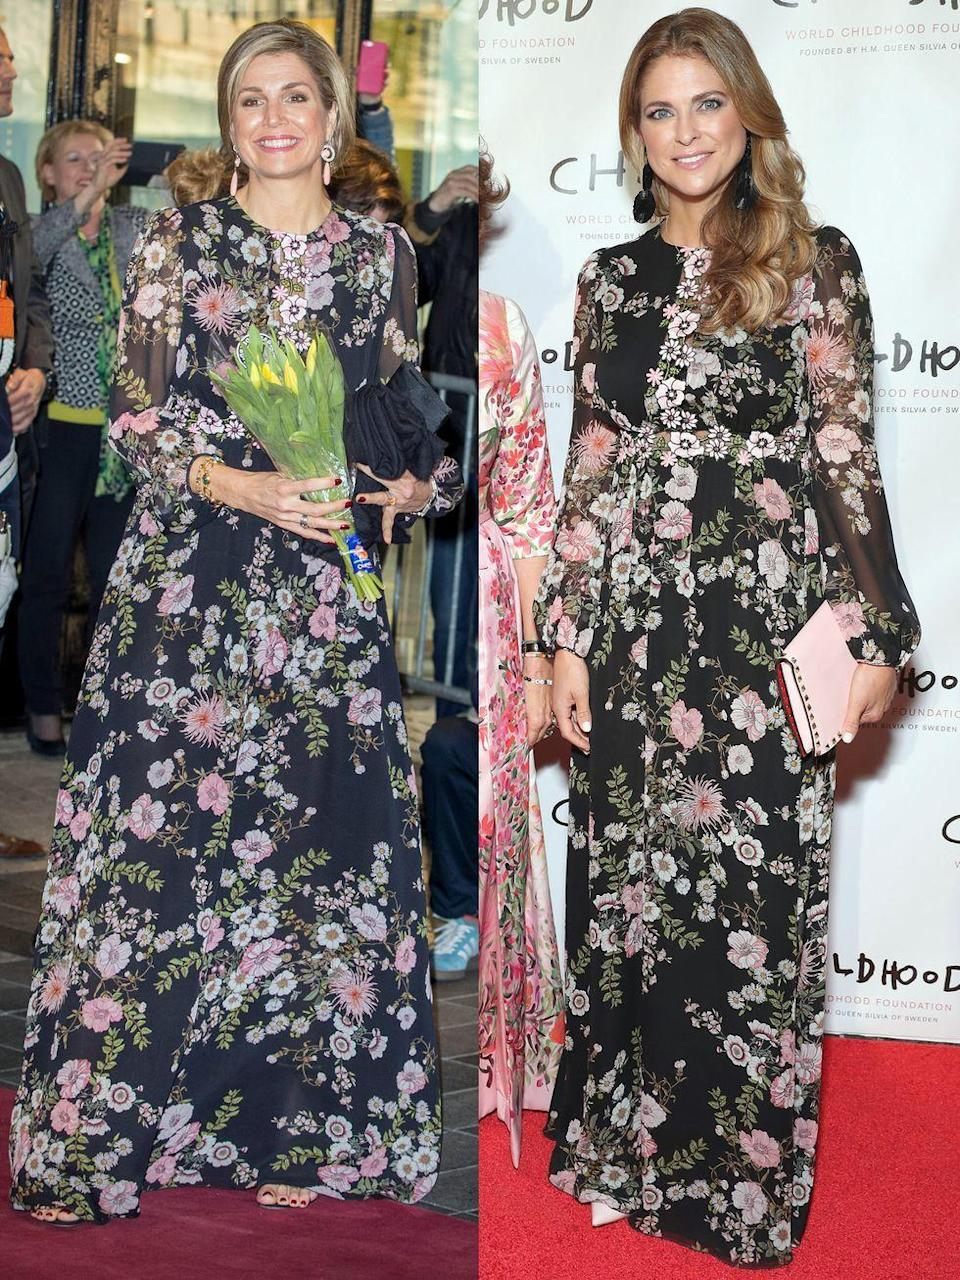 <p>Queen Maxima of the Netherlands, left, wears Giambattista Valli to the Tilburg Theater for the Kingsday concert on April 4, 2017. On the right, HRH Princess Madeleine of Sweden wears the same dress to the World Childhood Foundation Thank You Gala on October 3, 2018 in New York City.</p>